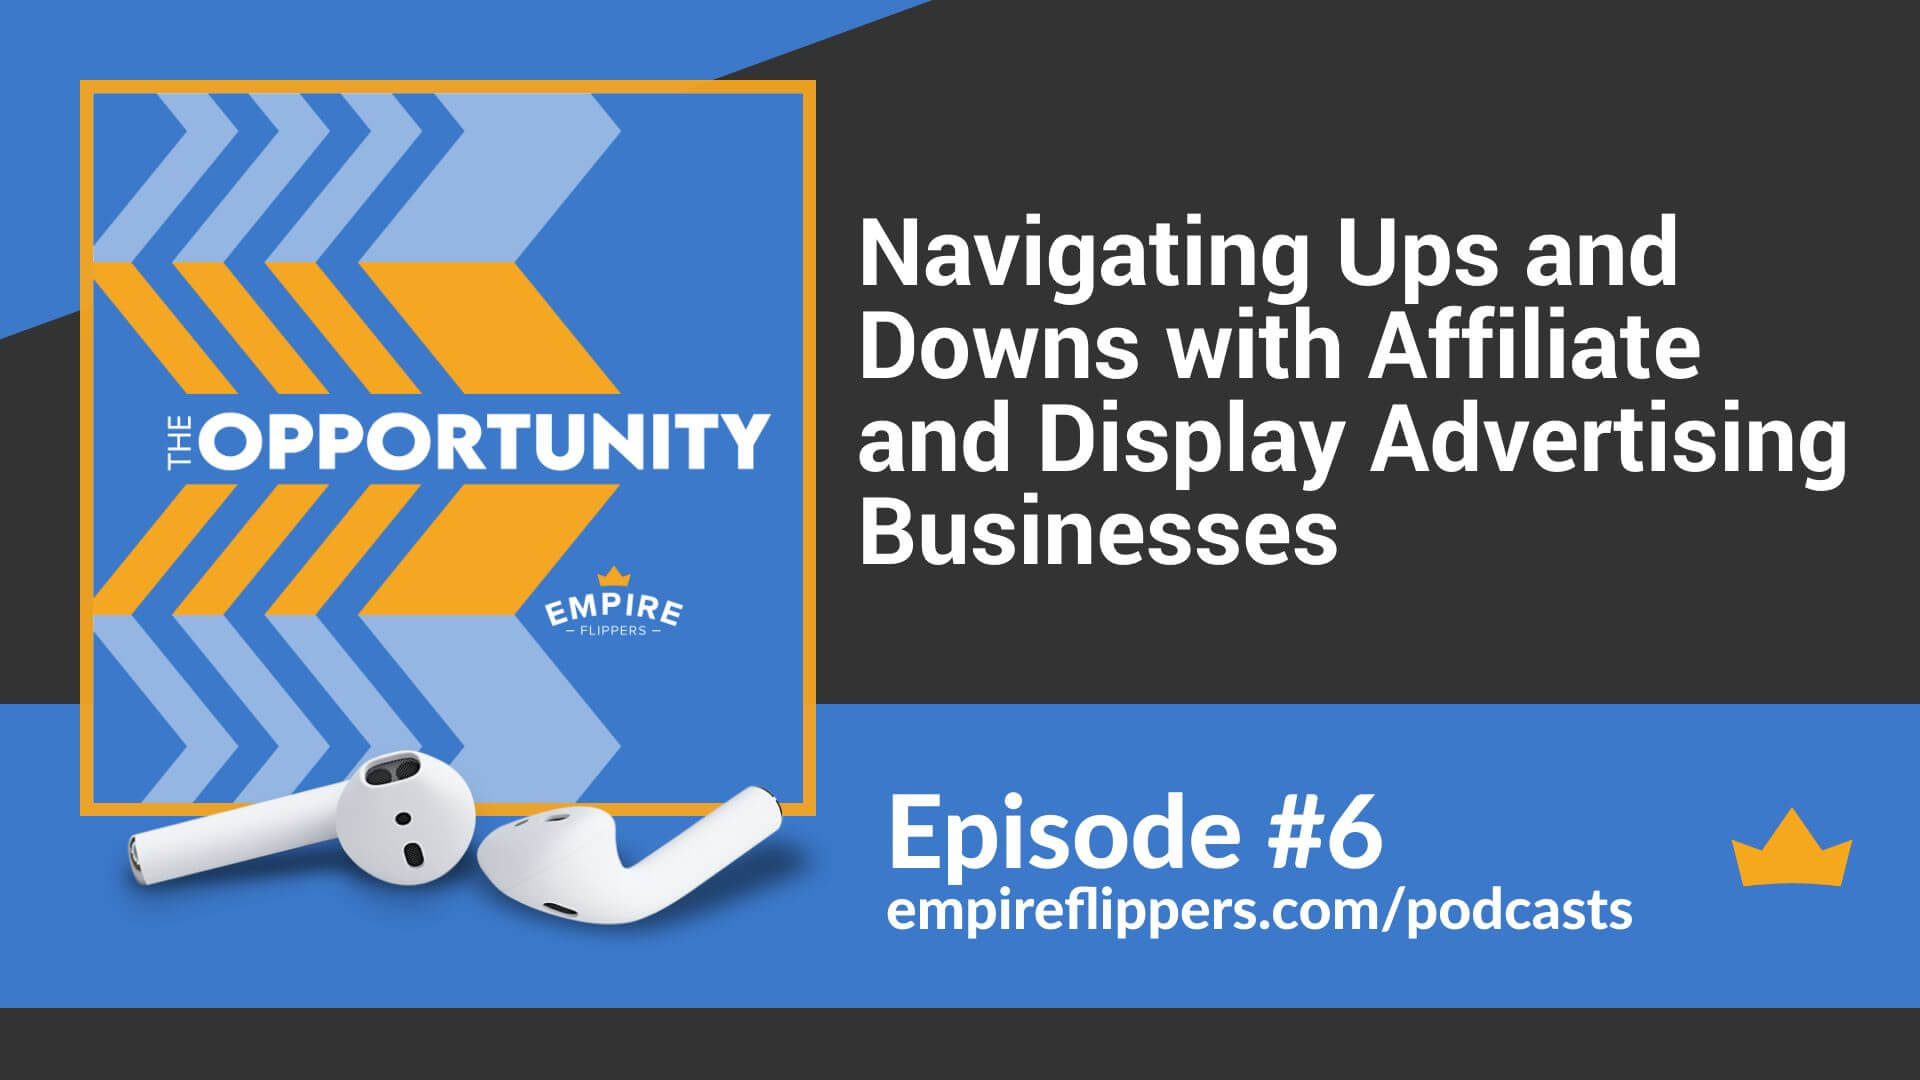 The Opportunity Ep.6: Navigating Ups and Downs with Affiliate and Display Advertising Businesses